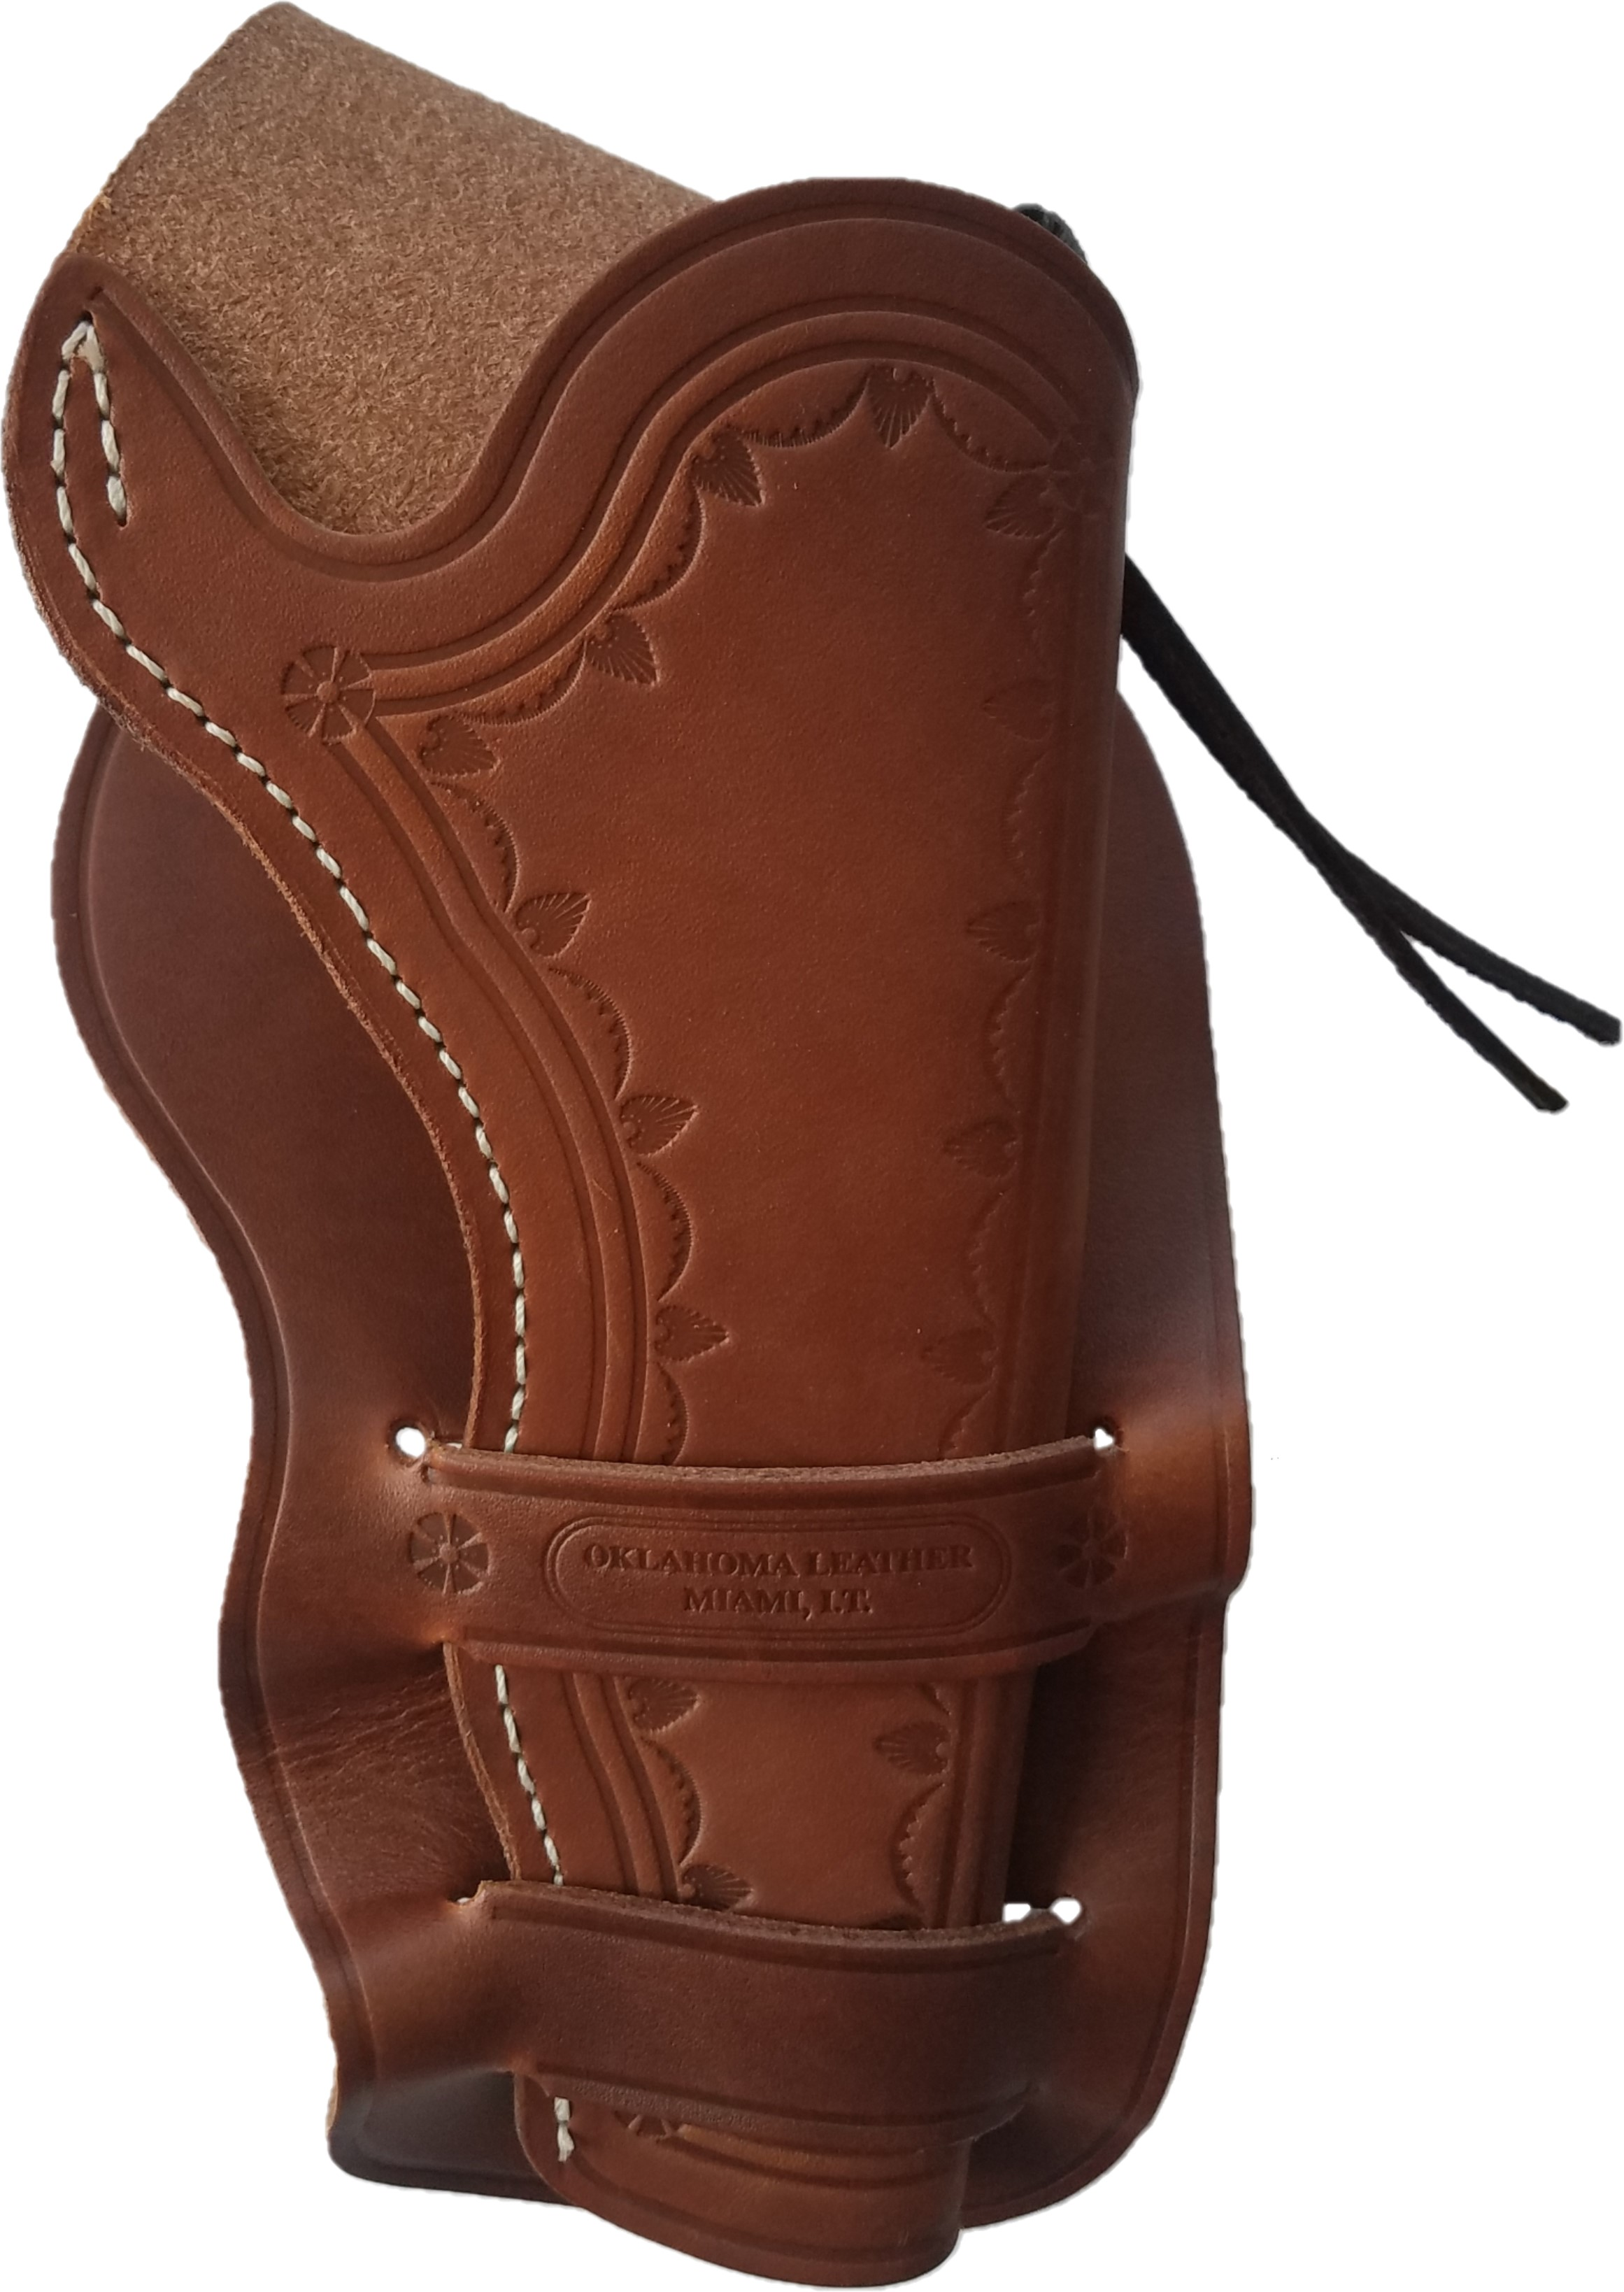 DOUBLE LOOP CROSSDRAW HOLSTER